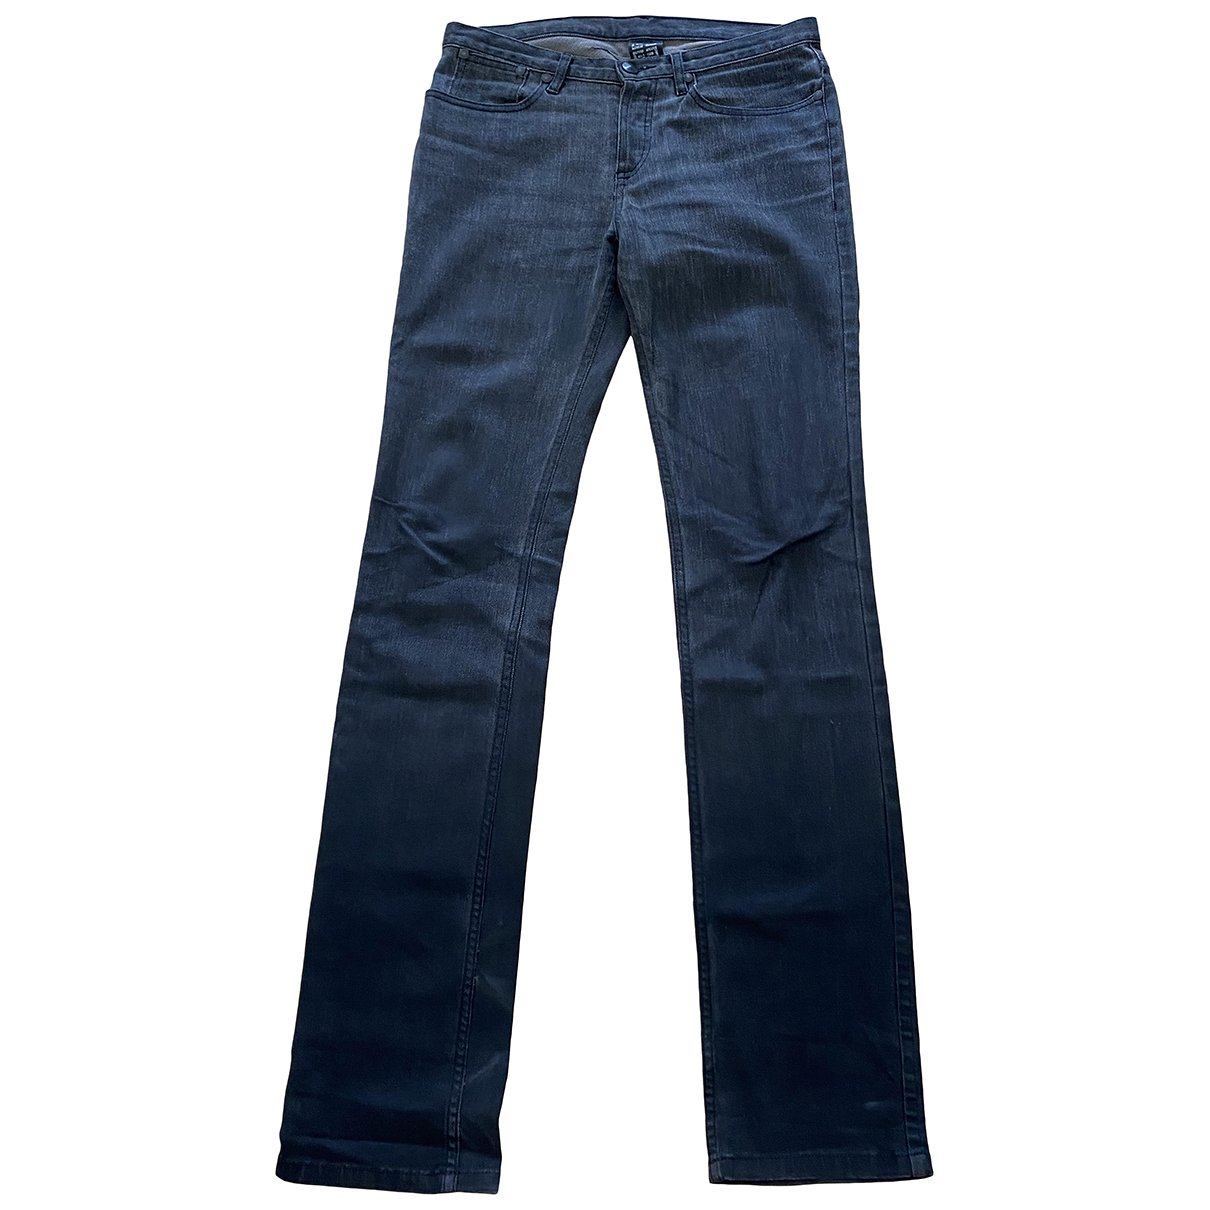 Givenchy \N Grey Cotton - elasthane Jeans for Men 27 US